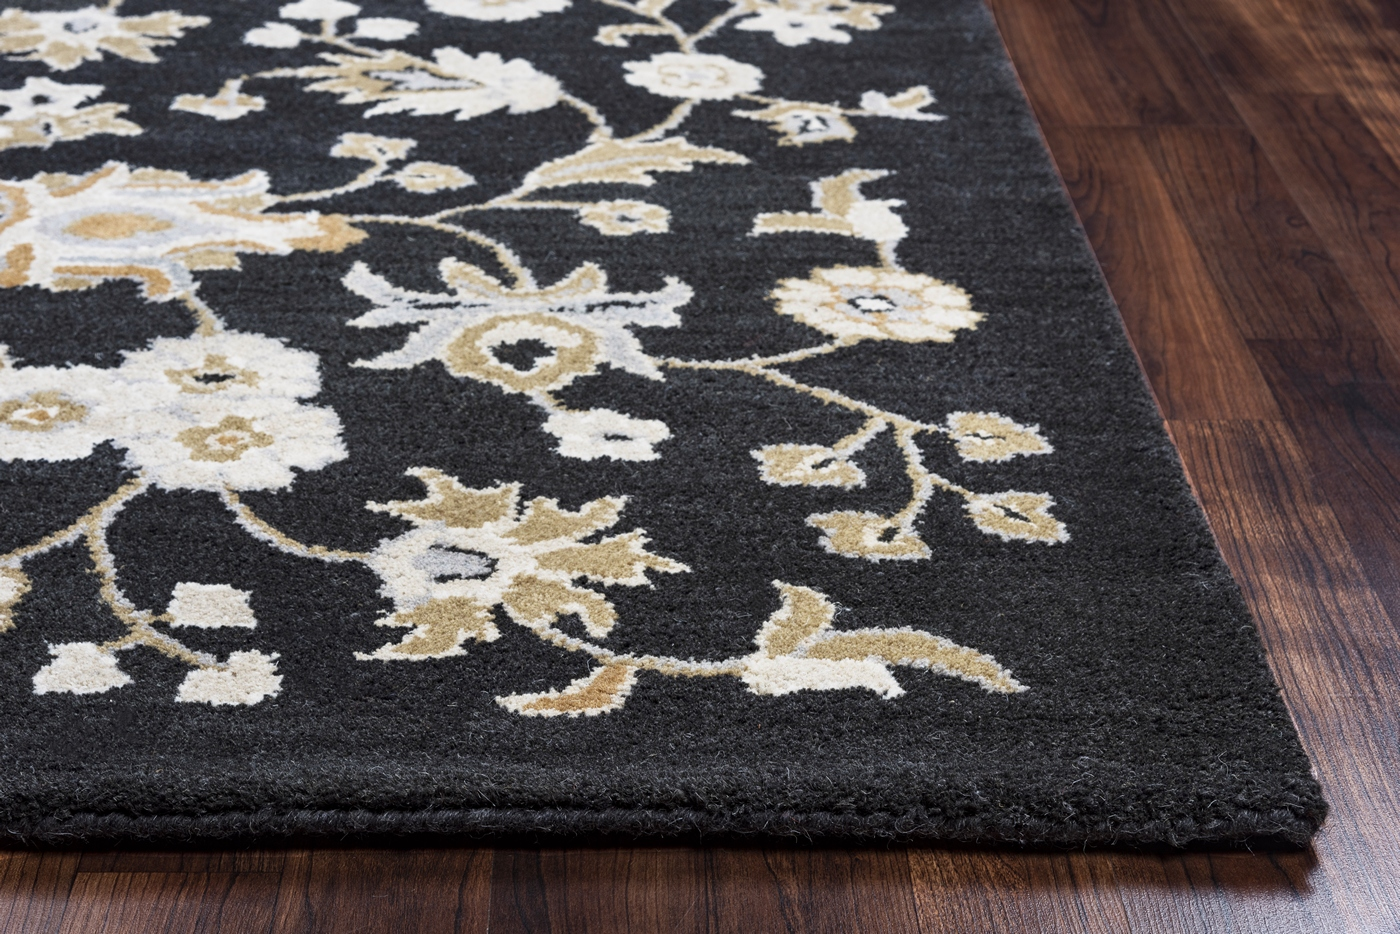 Valintino Ornate Floral Pattern Wool Area Rug In Black